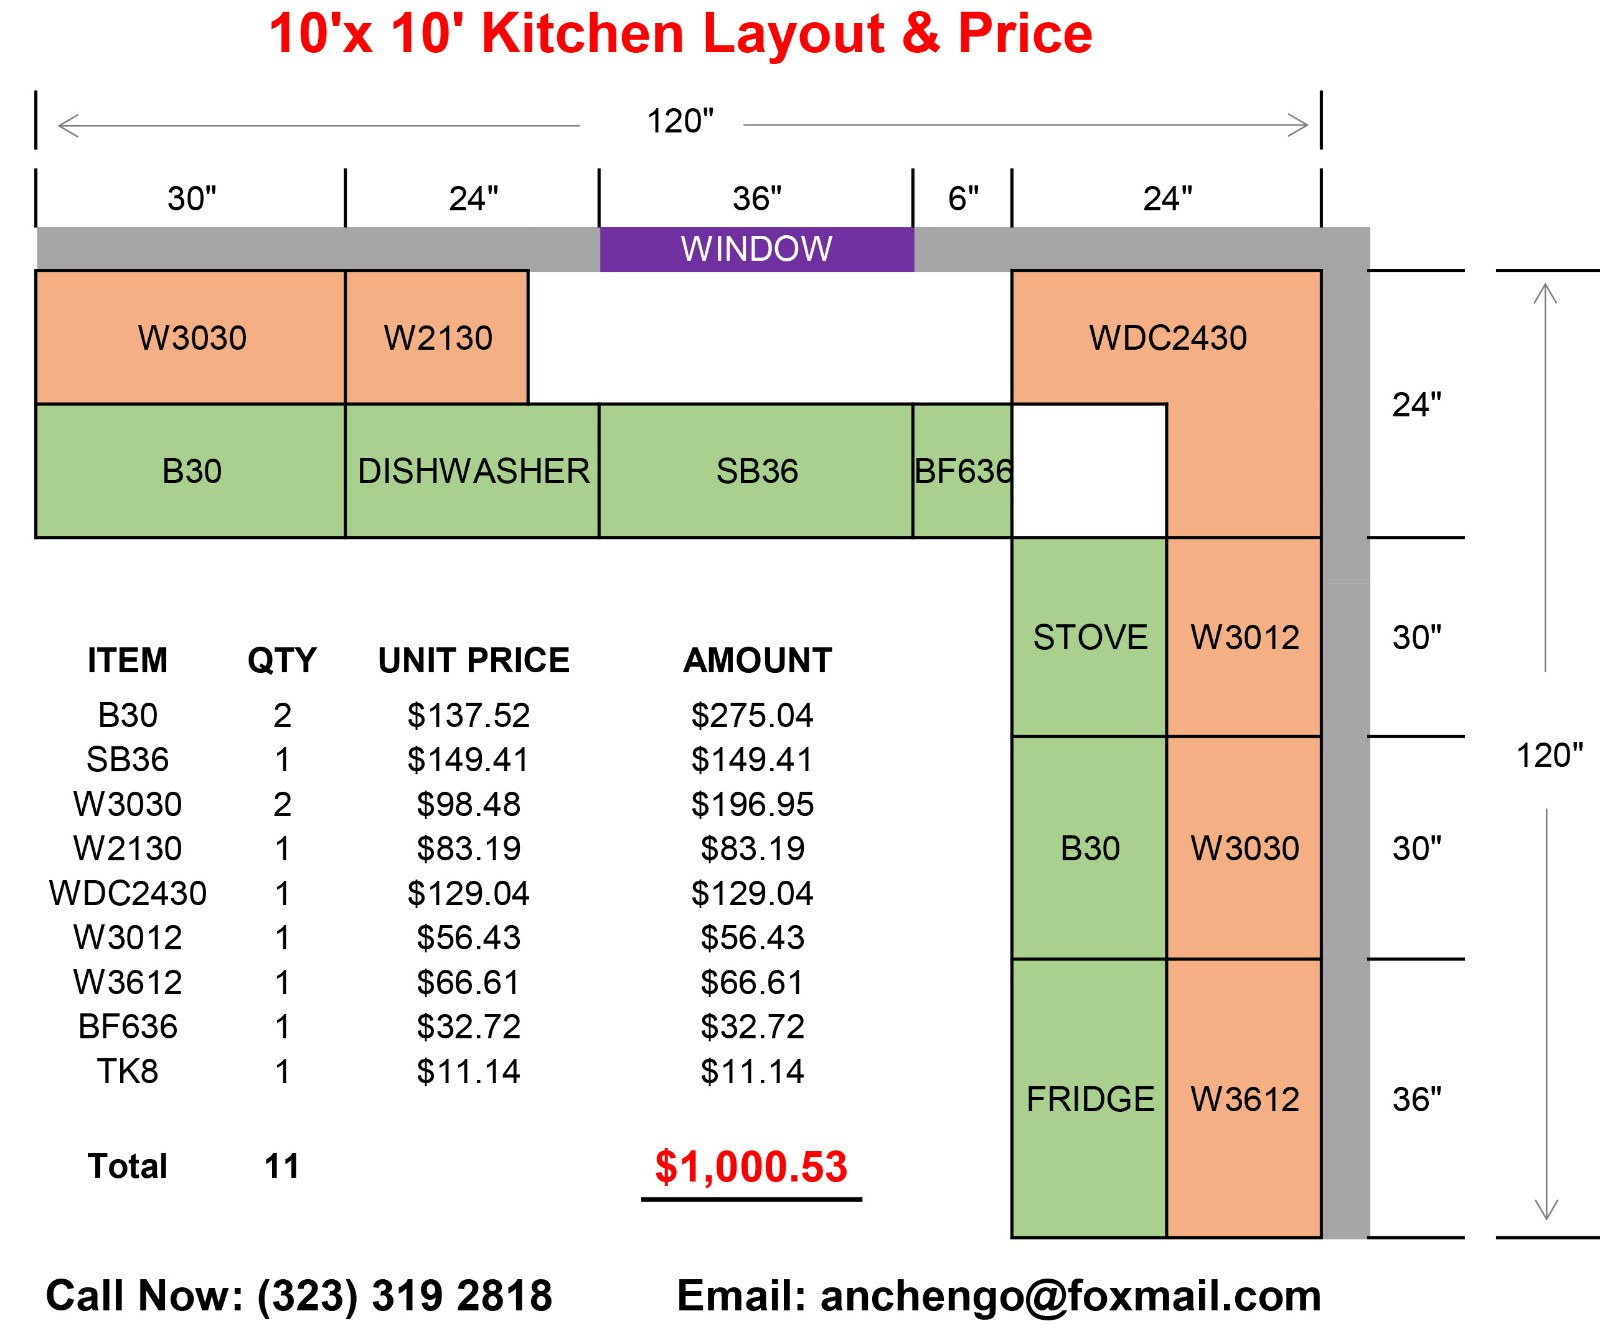 2 Cuisine 10'x 10 'Layout & Price.jpg